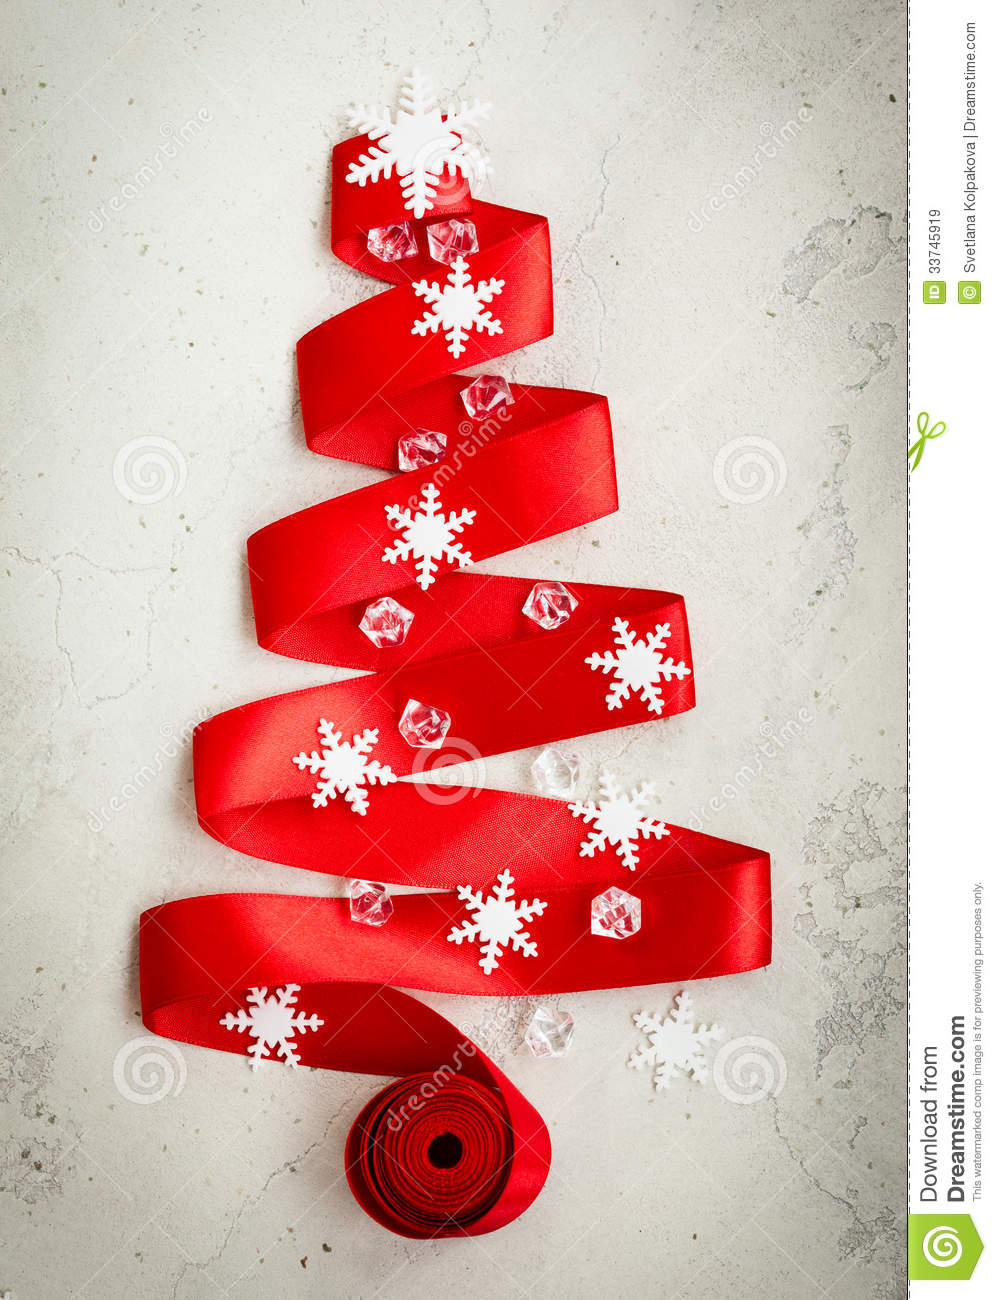 Red ribbon christmas tree royalty free stock images for Red ribbon around tree